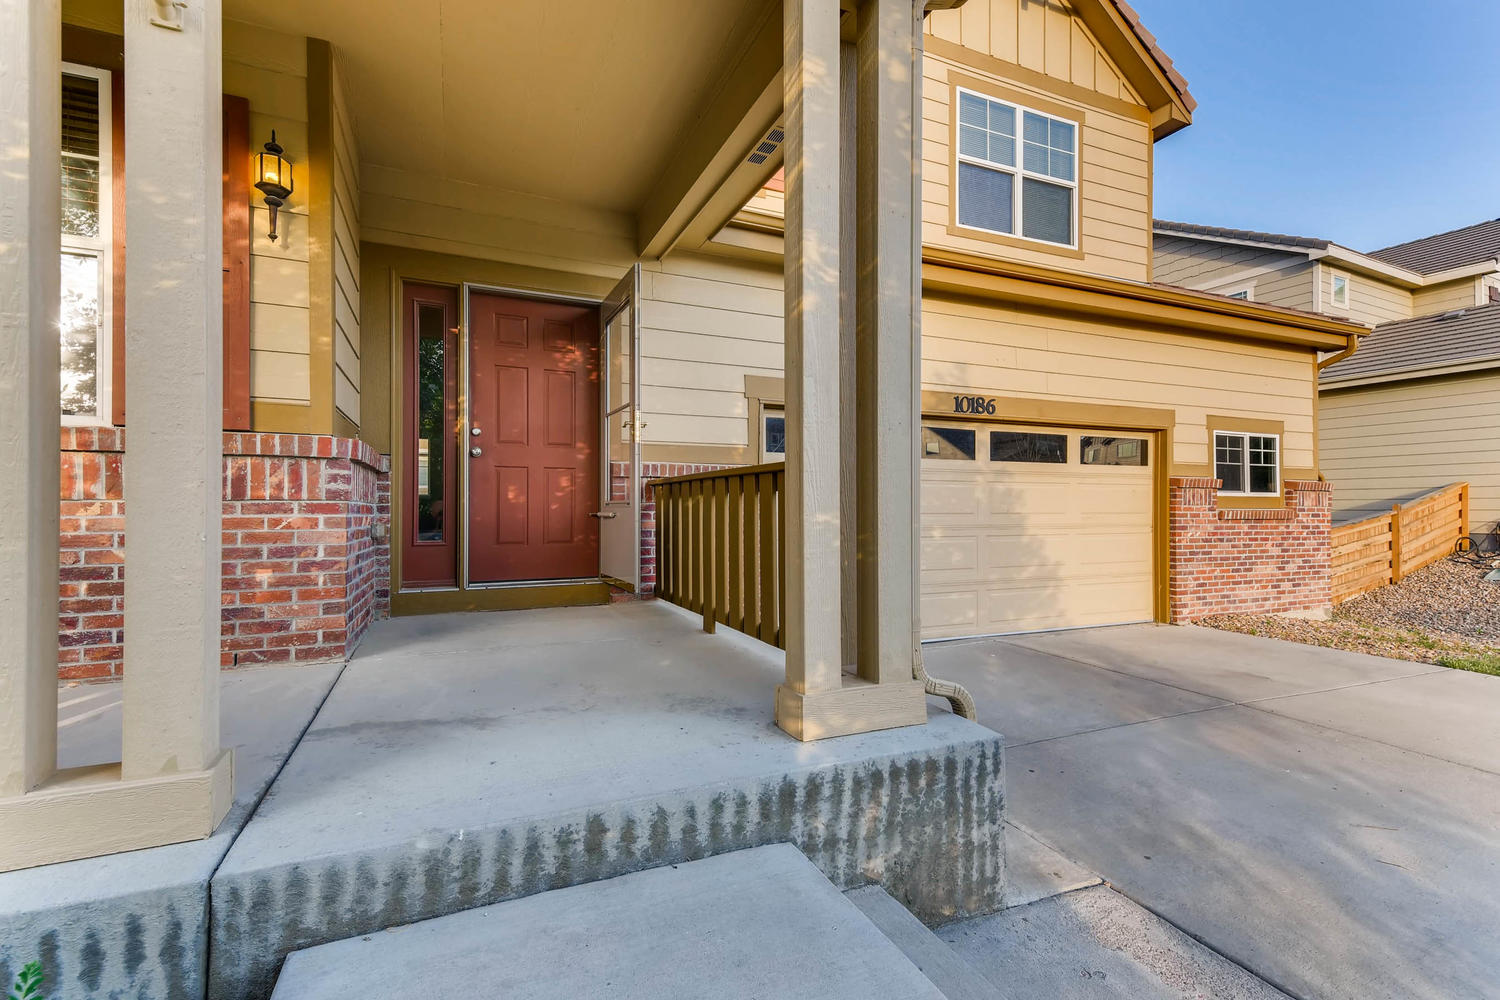 10186 Pitkin Way Commerce City-large-003-1-Exterior Front Entry-1500x1000-72dpi.jpg